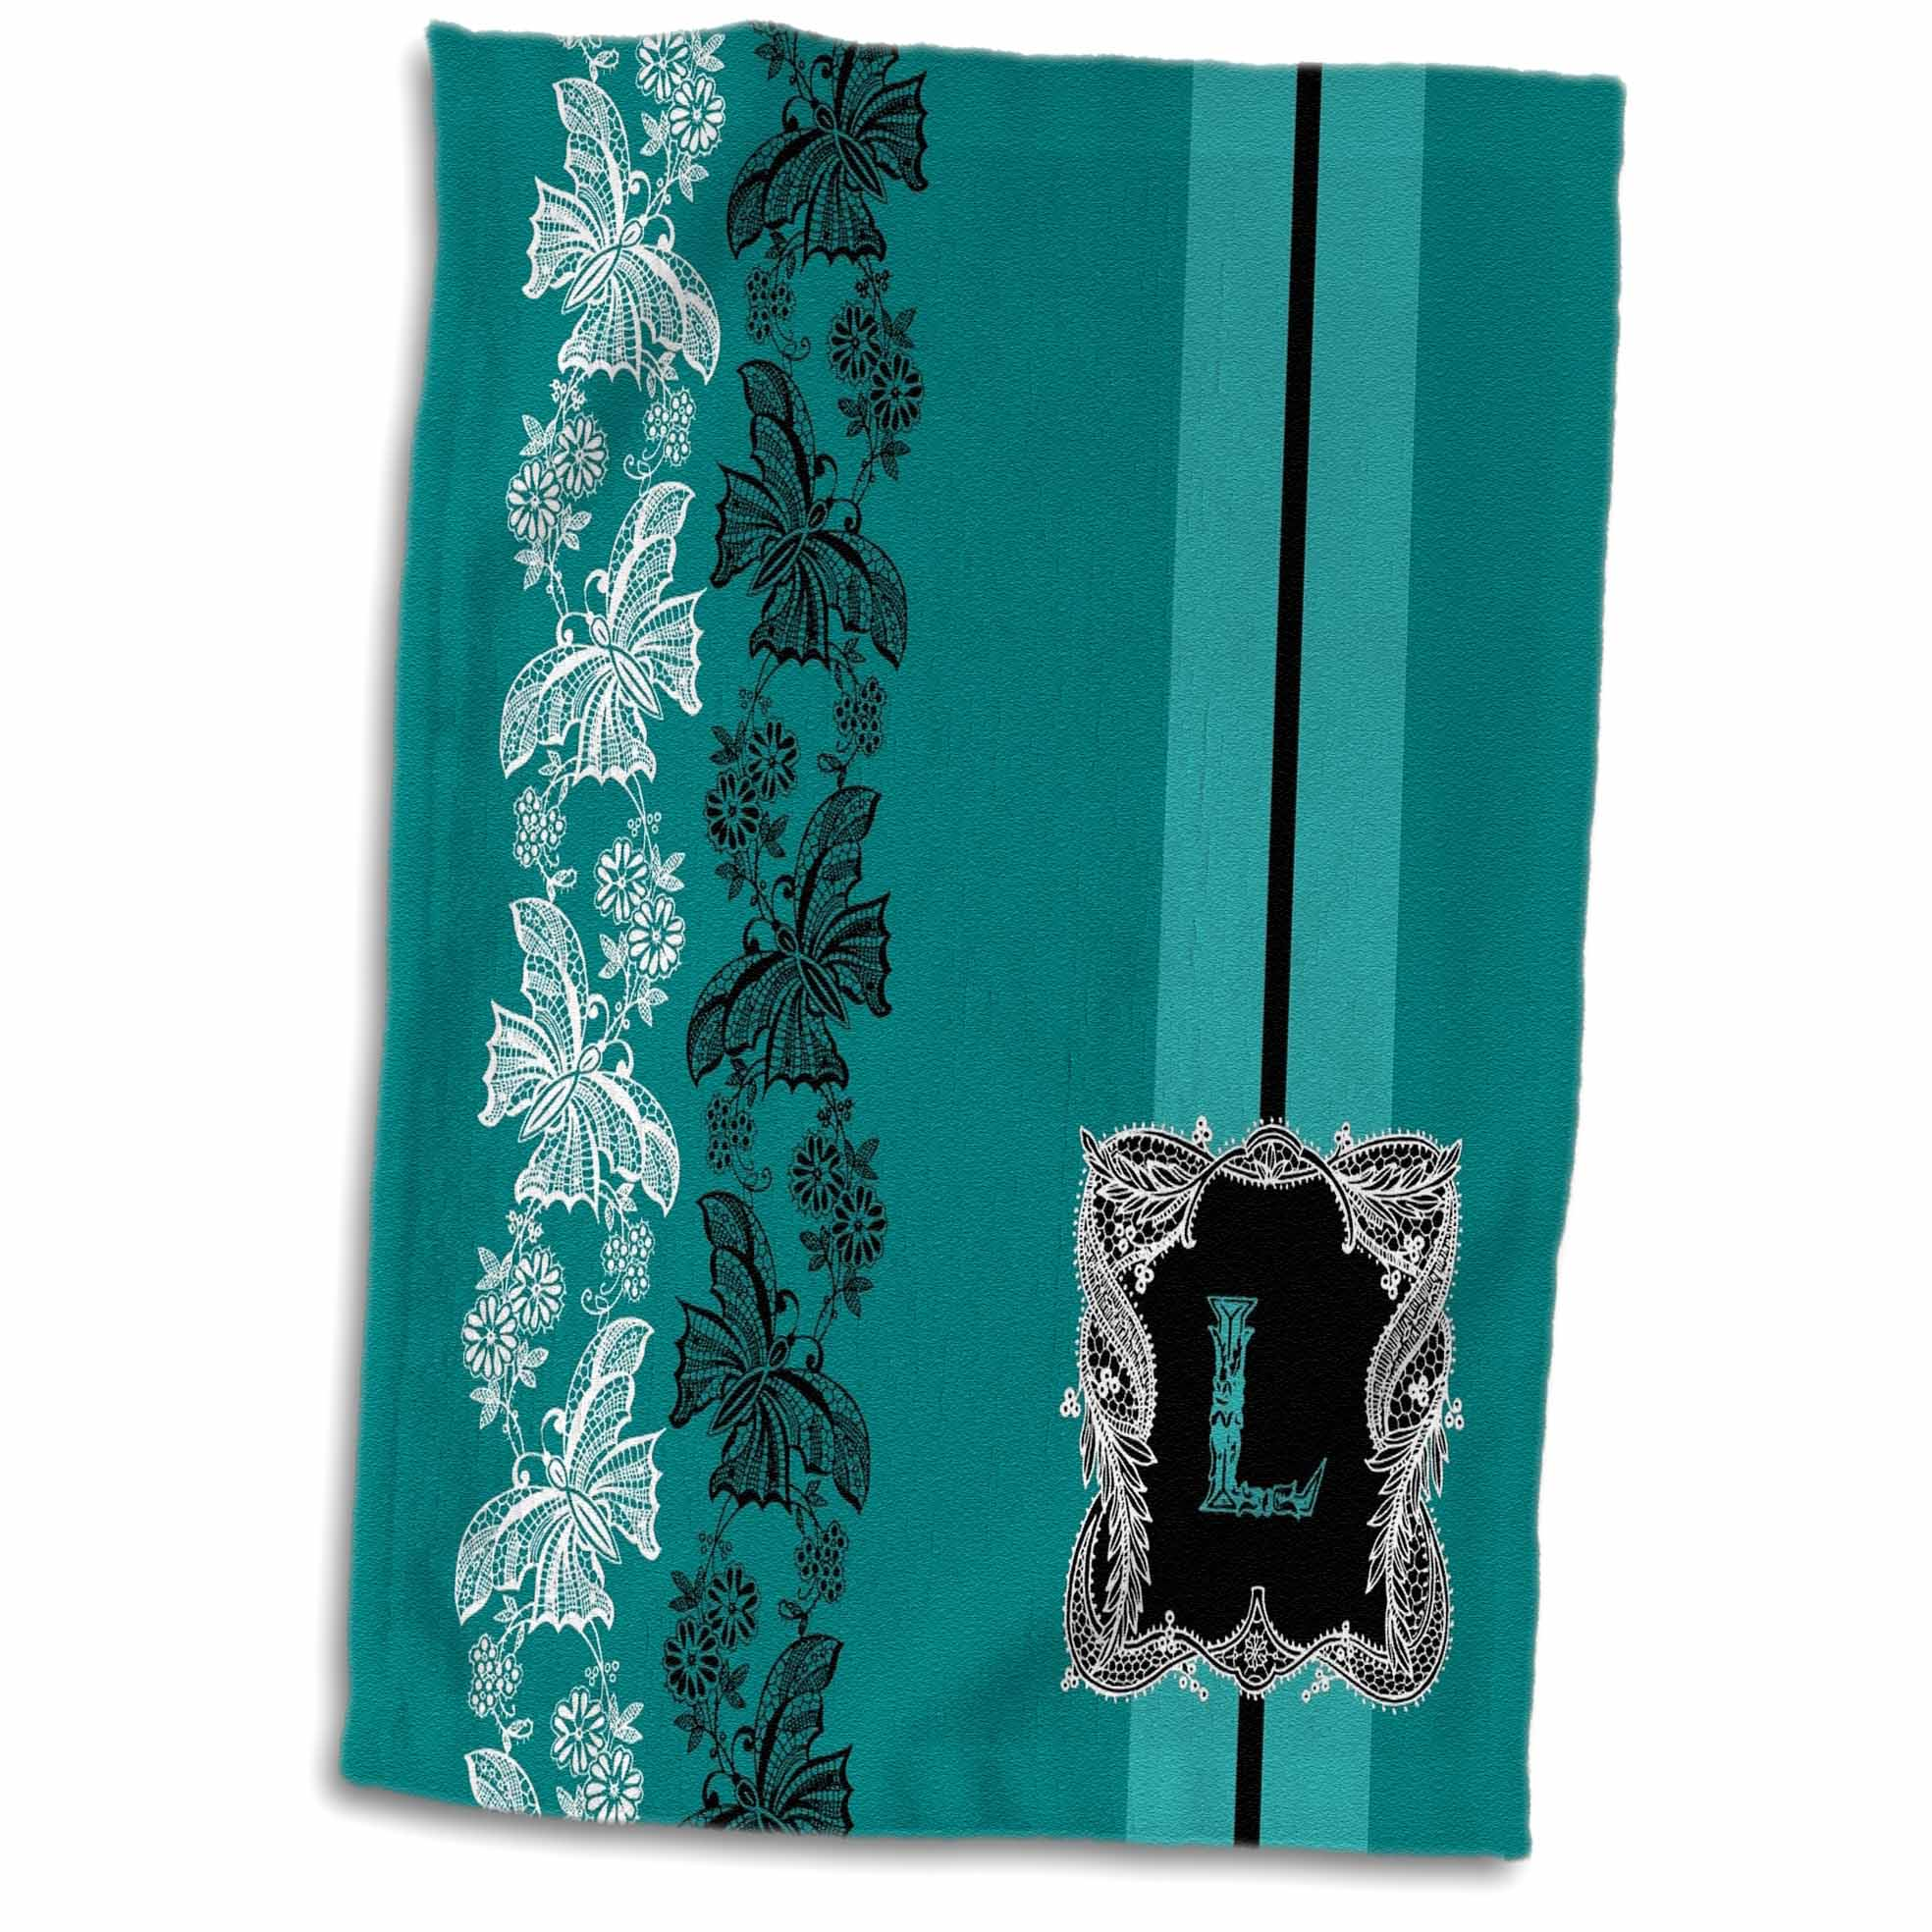 3dRose Monogram Initial L in Teal White and Black Lace - Towel, 15 by 22-inch